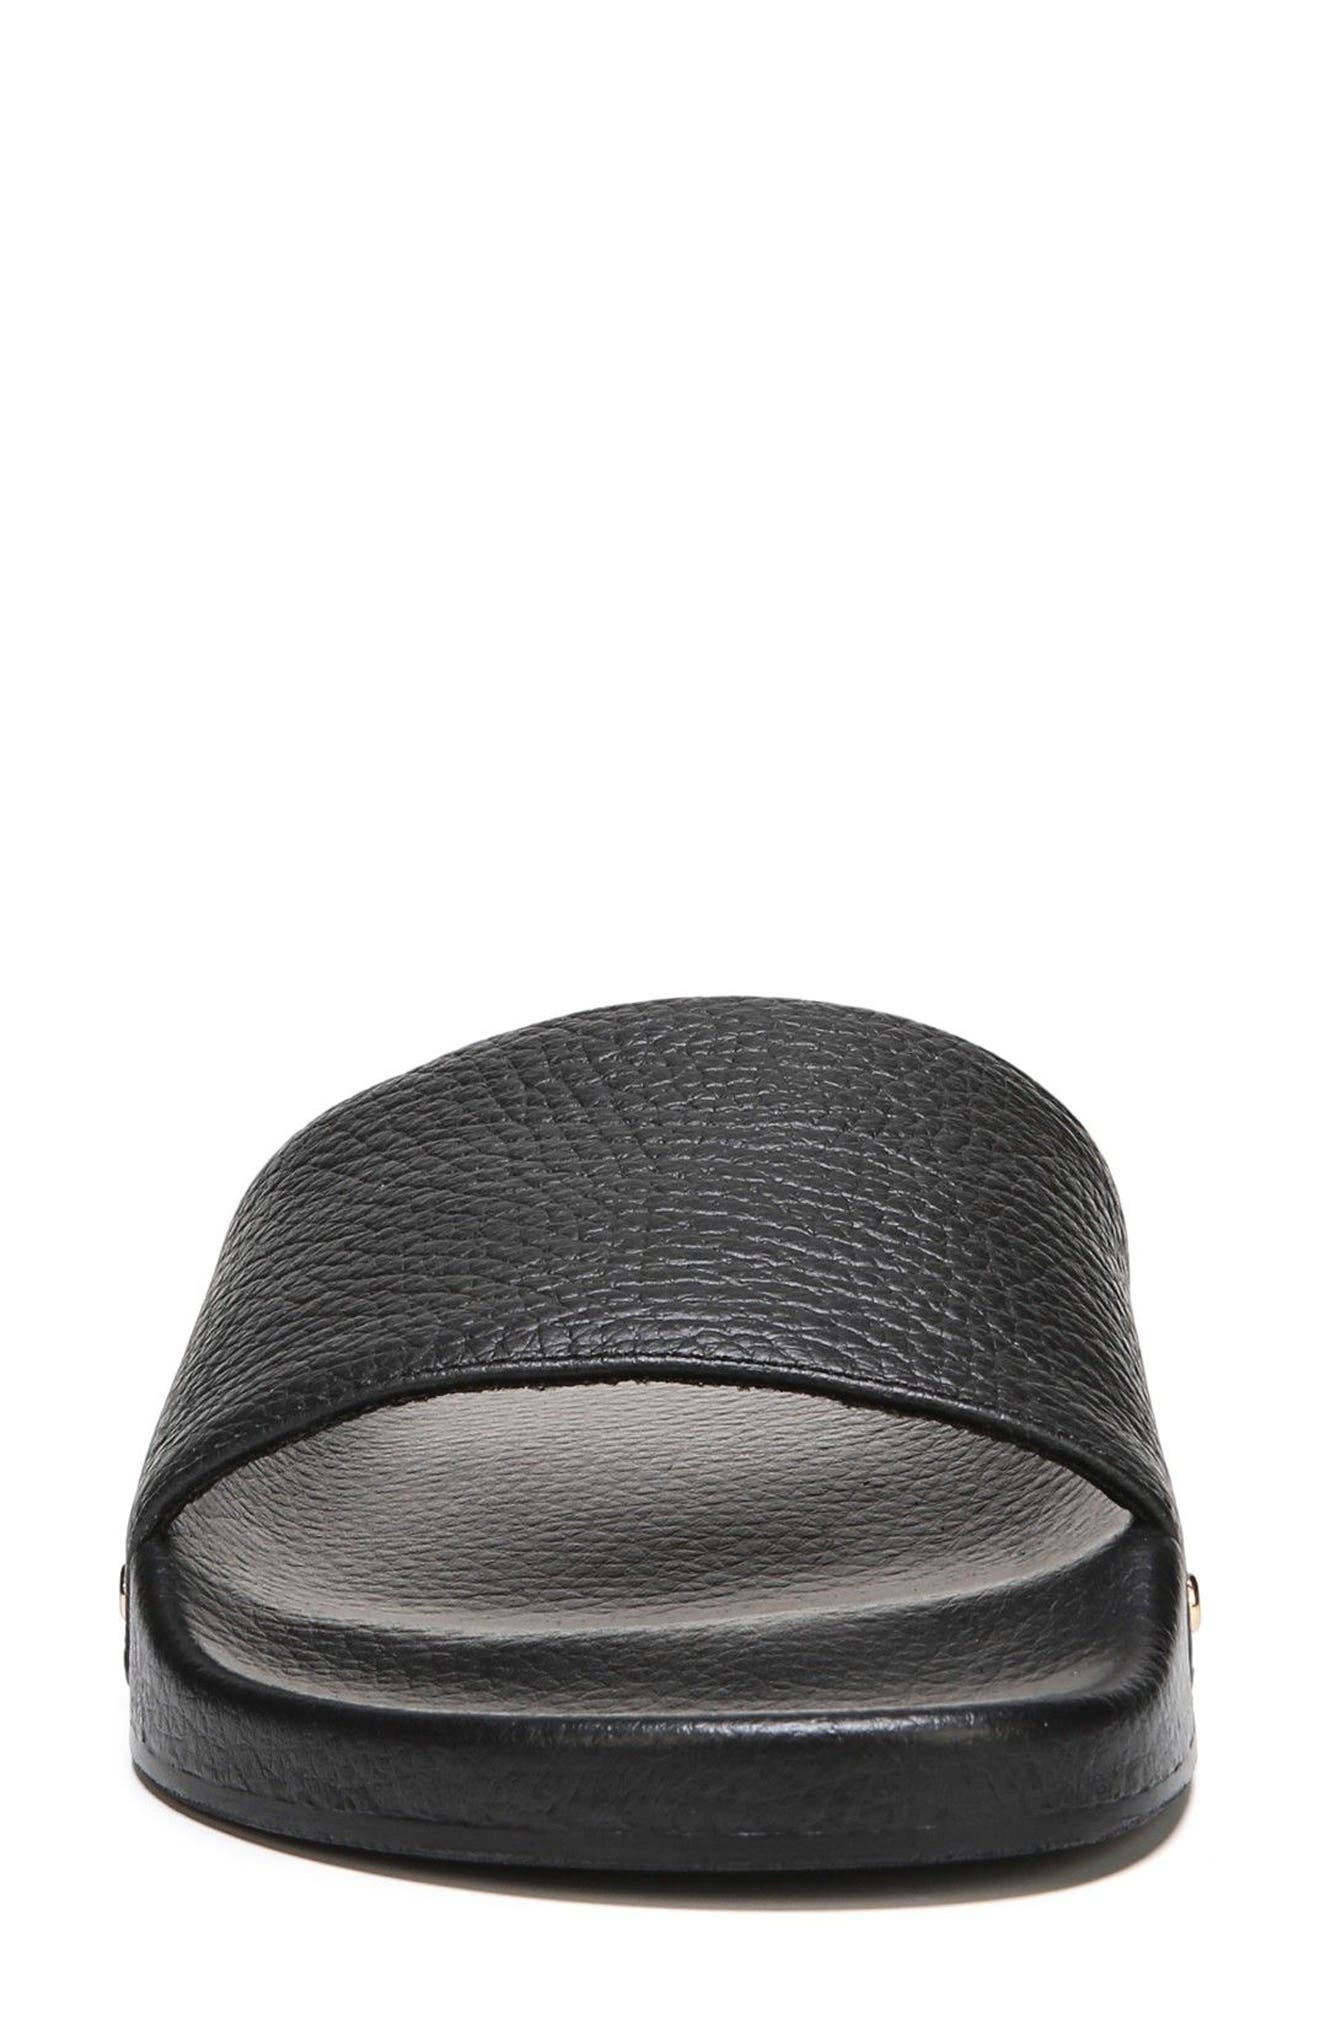 Pisces Slide Sandal,                             Alternate thumbnail 4, color,                             BLACK LEATHER